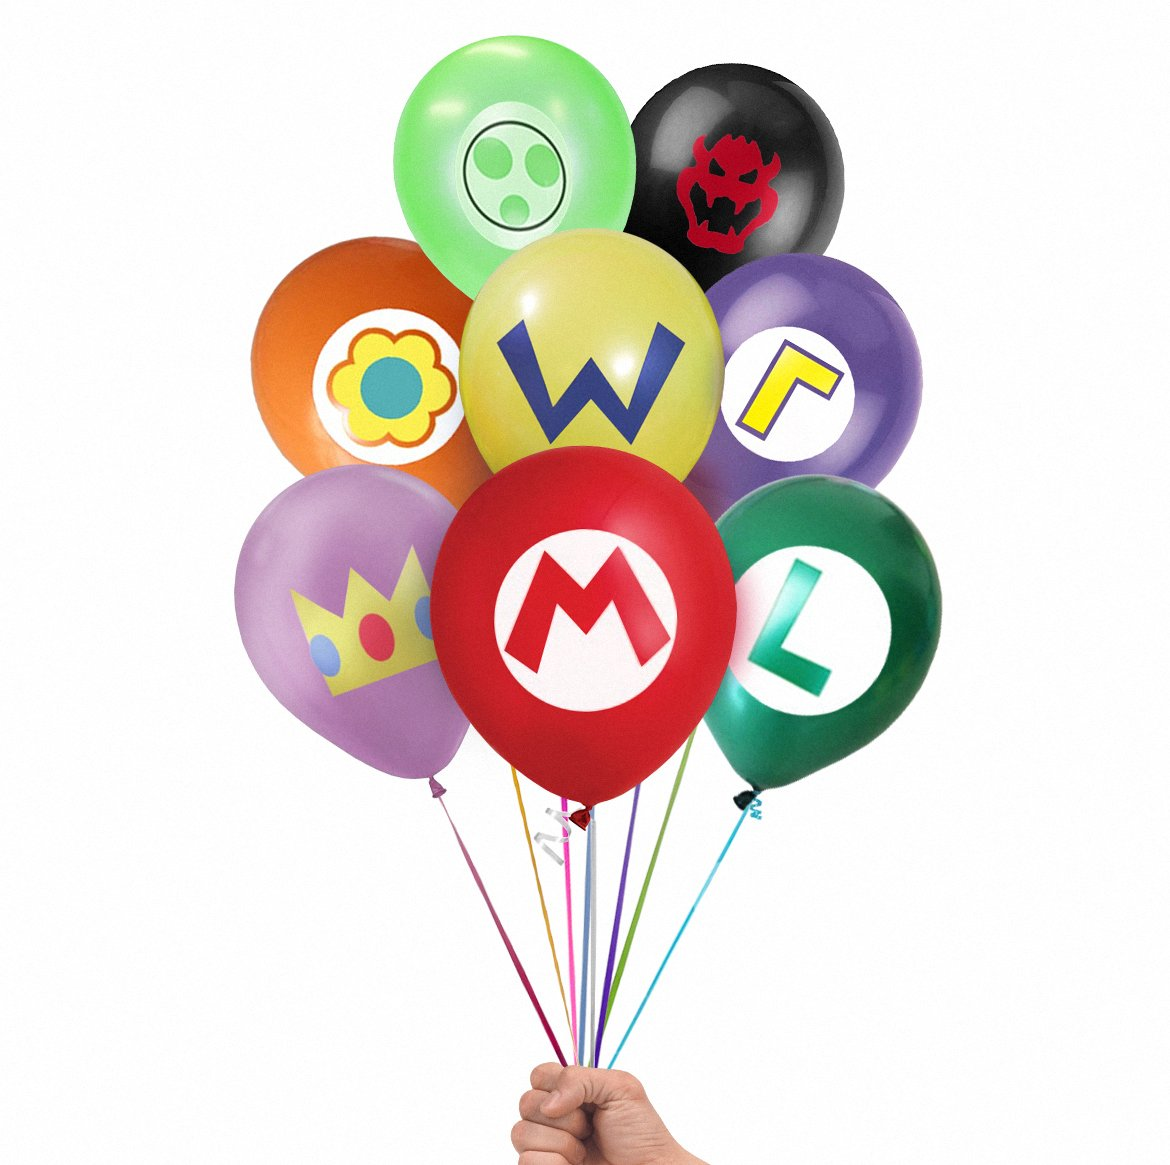 Super Mario Brothers Emblem 24 Count Party Balloon Pack - Large 12'' Latex Balloons